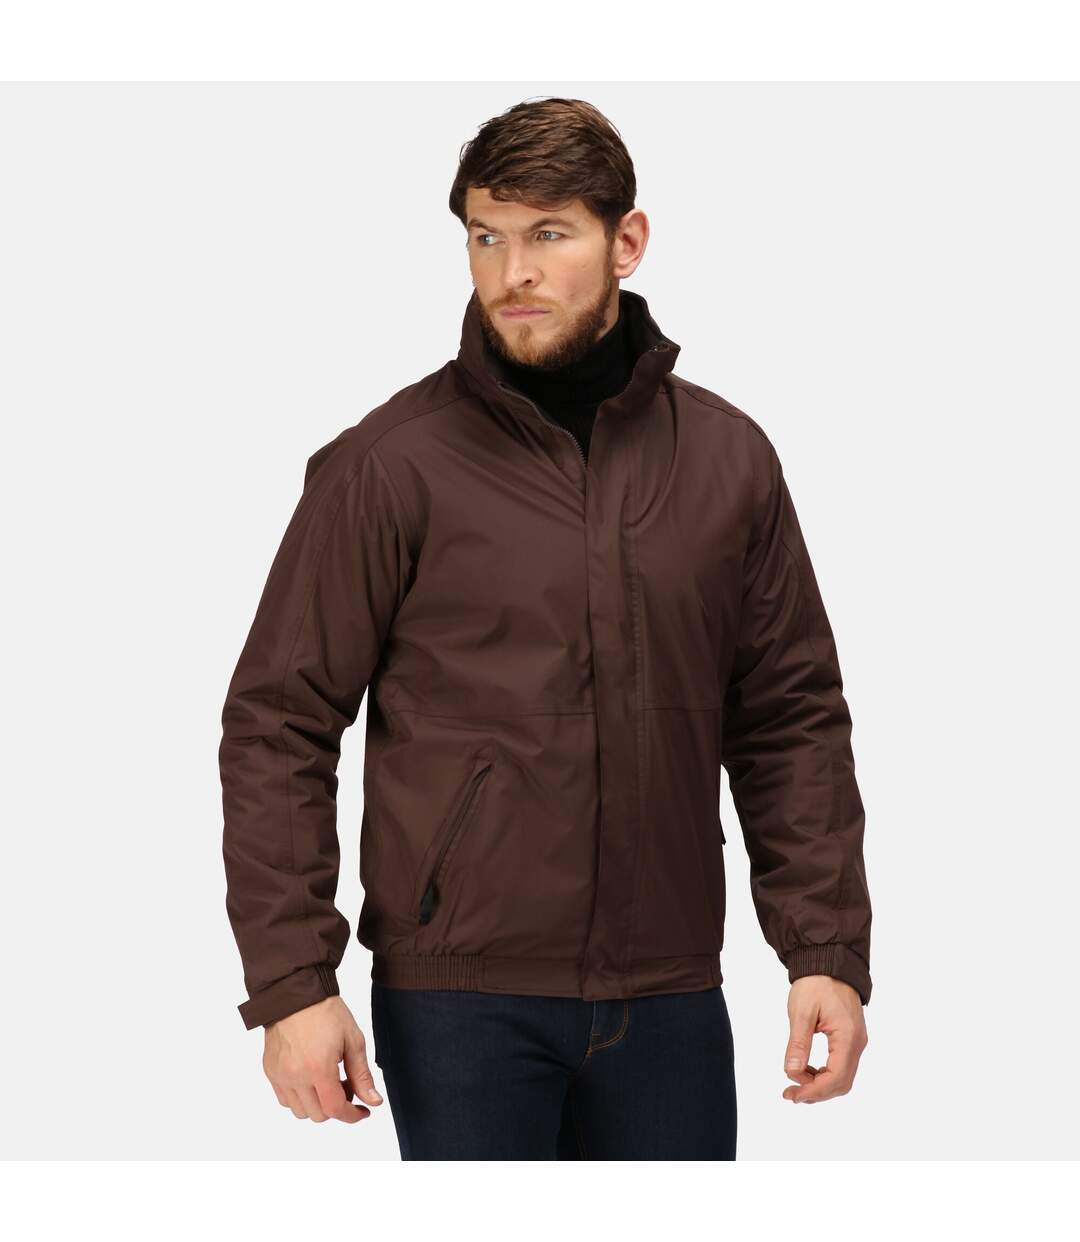 Regatta Dover Waterproof Windproof Jacket (Thermo-Guard Insulation) (Otter/Black) - UTRG1425